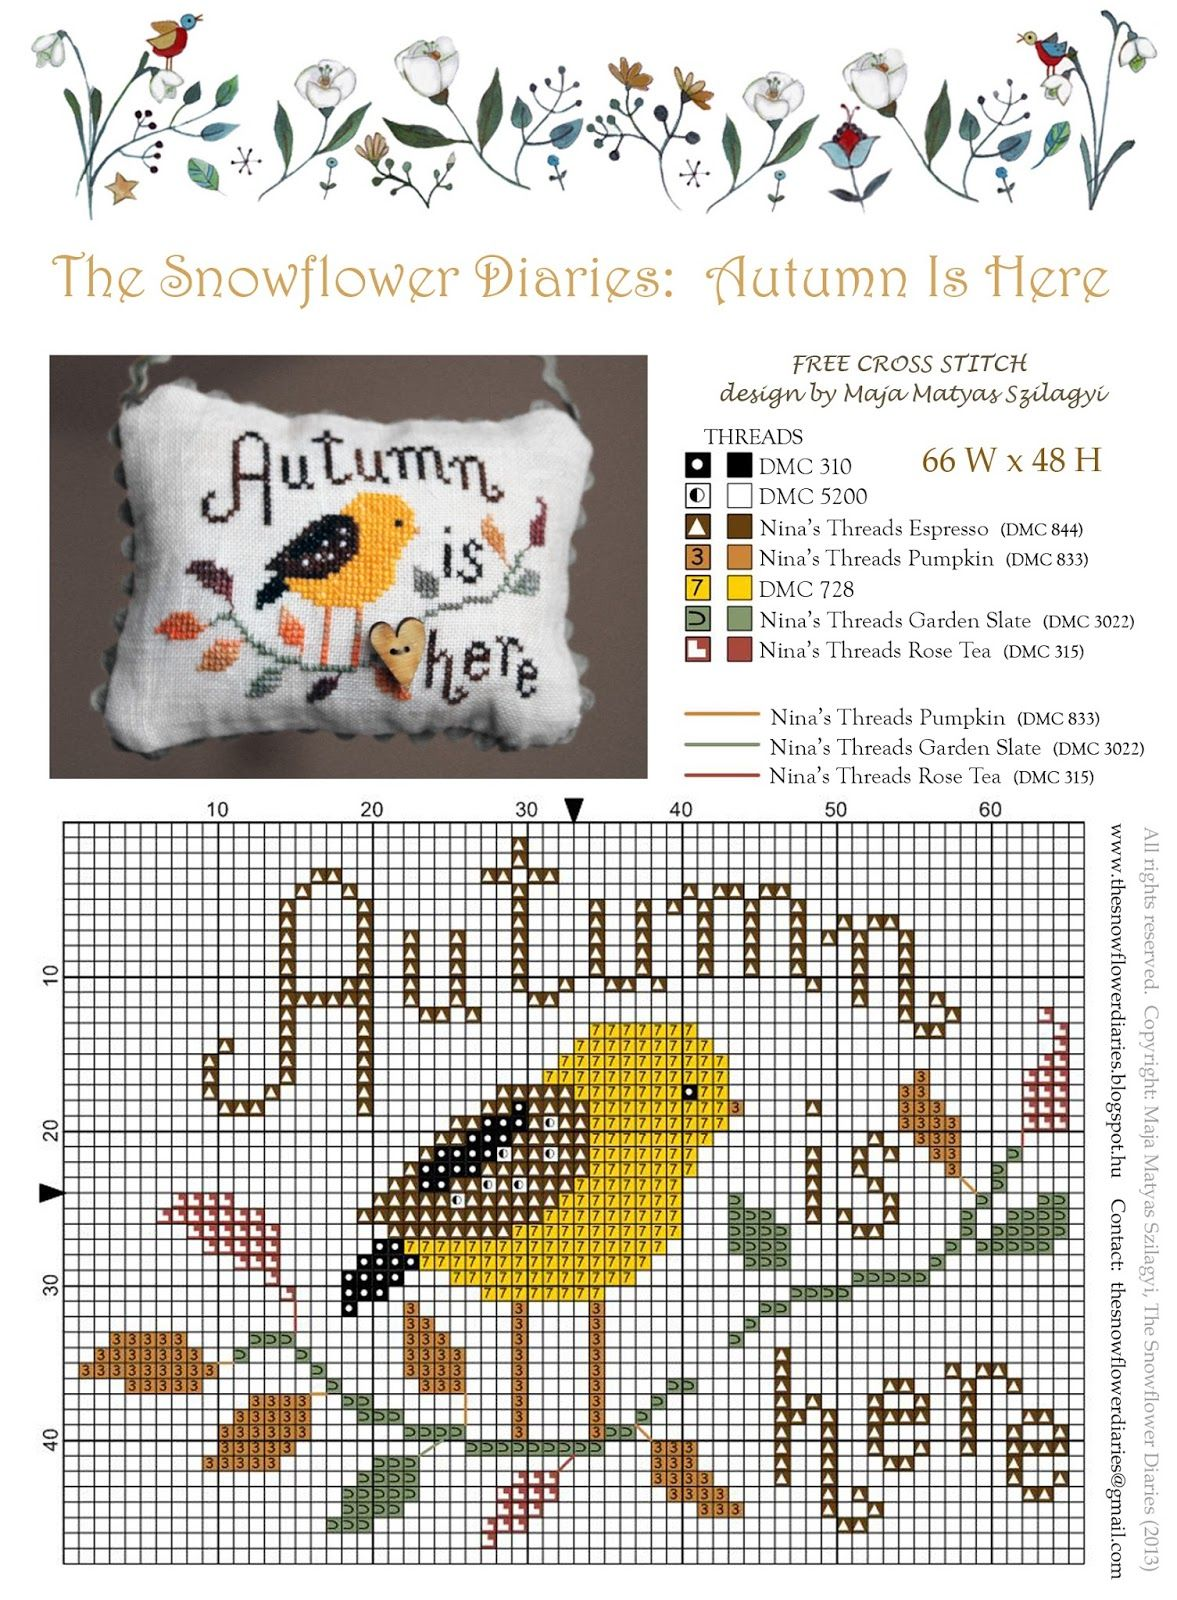 The Snowflower Diaries: FREE CHART - AUTUMN IS HERE | Cross